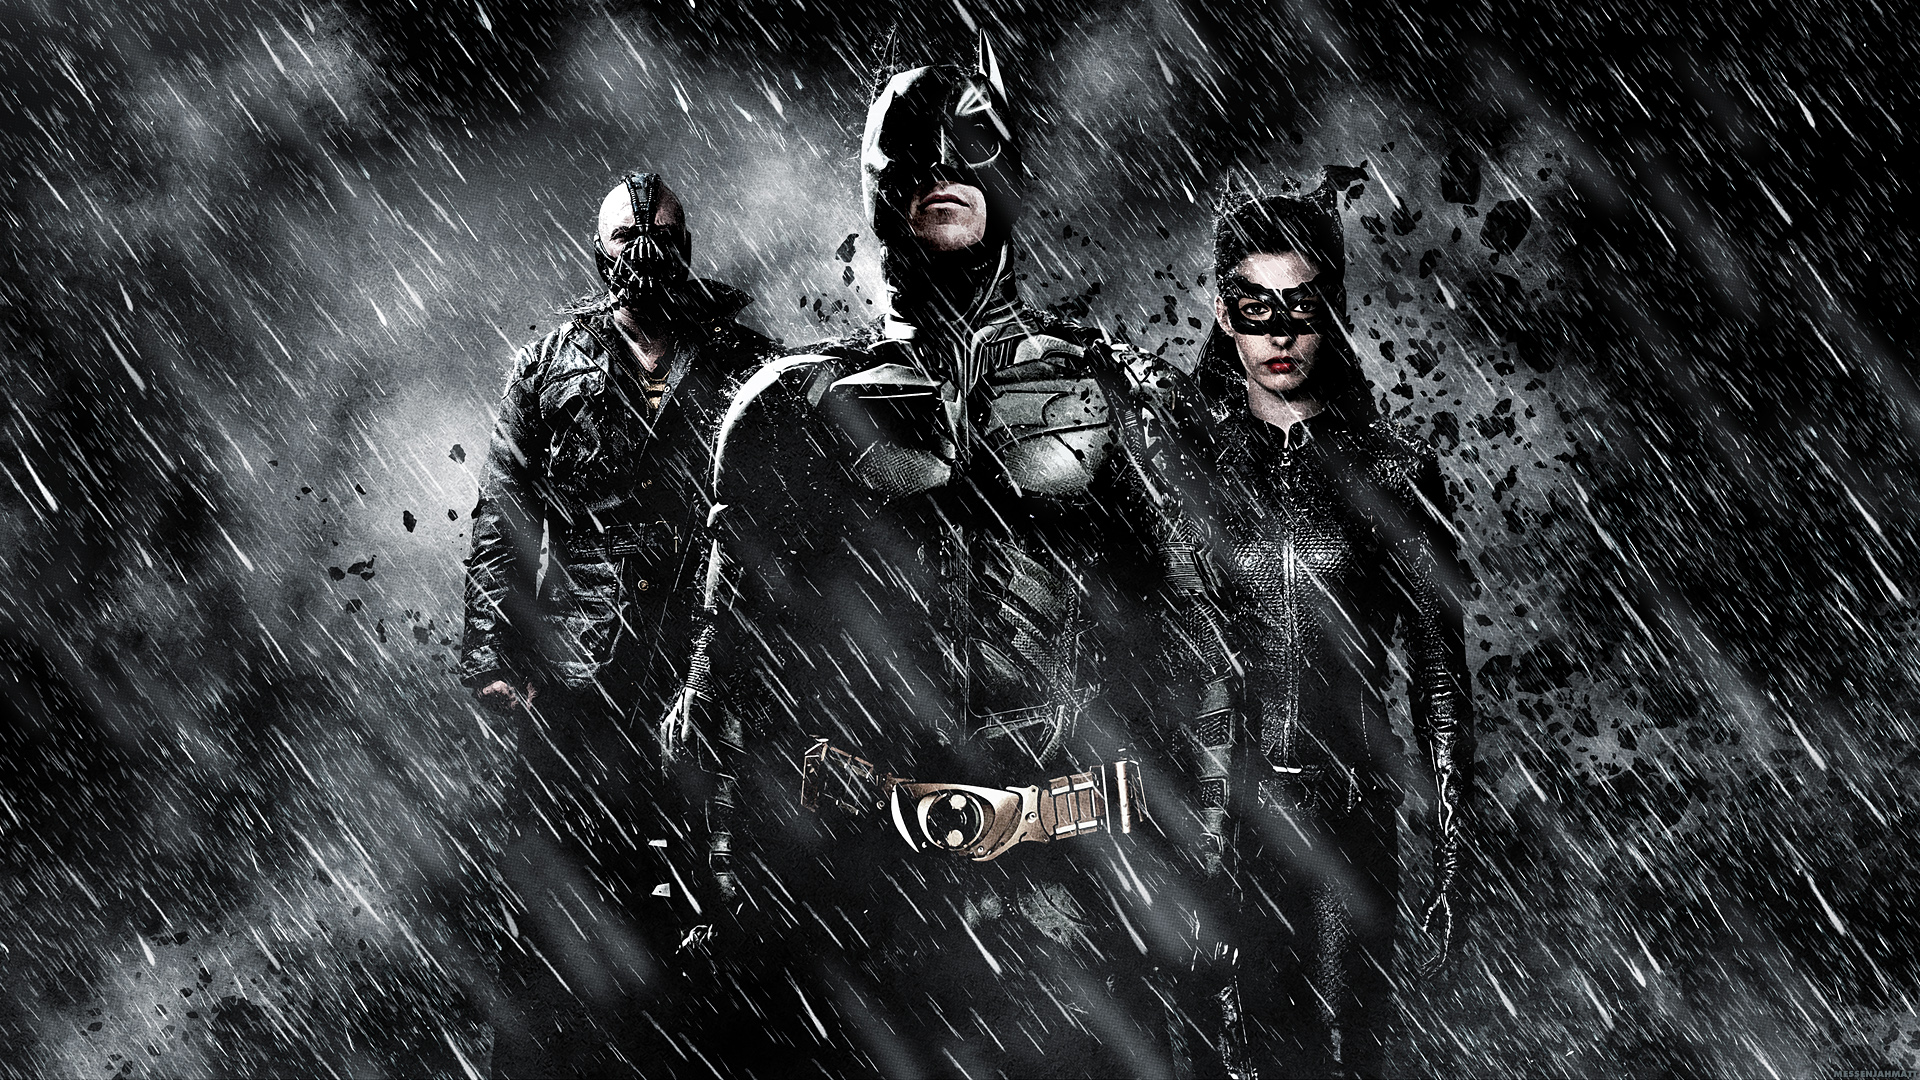 the_dark_knight_rises_movie-hd amazing